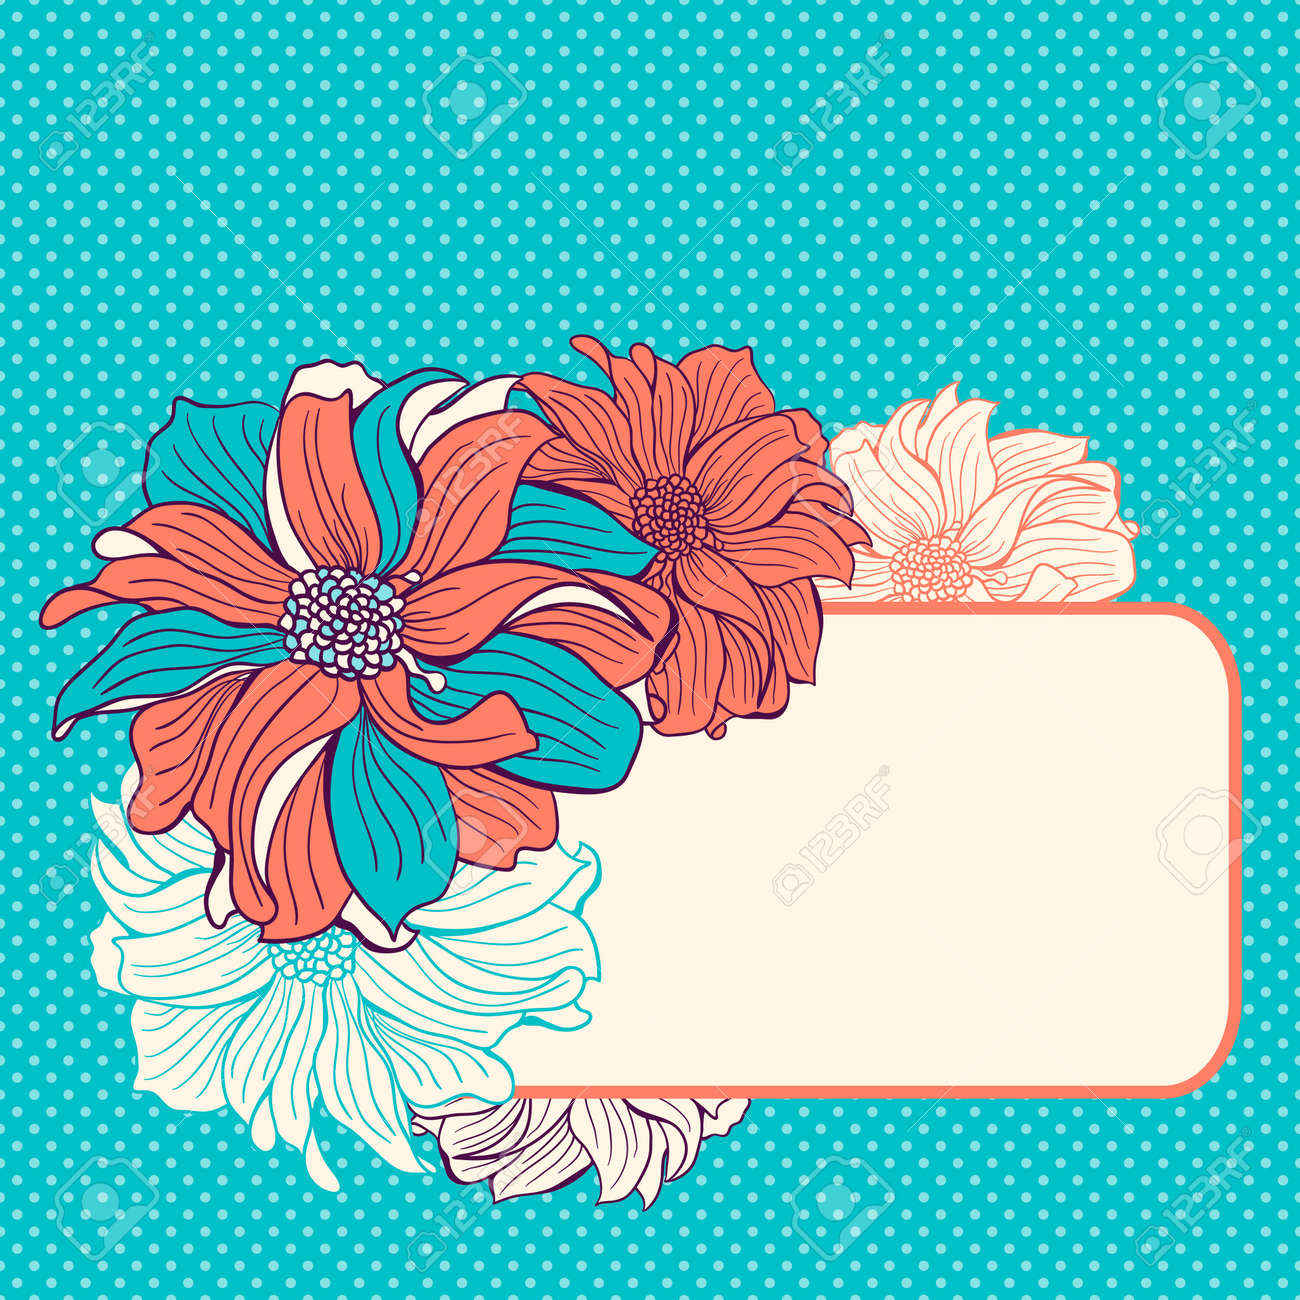 Greeting Card With Hand Drawn Dahlia Flowers Mint Turquoise Aqua And